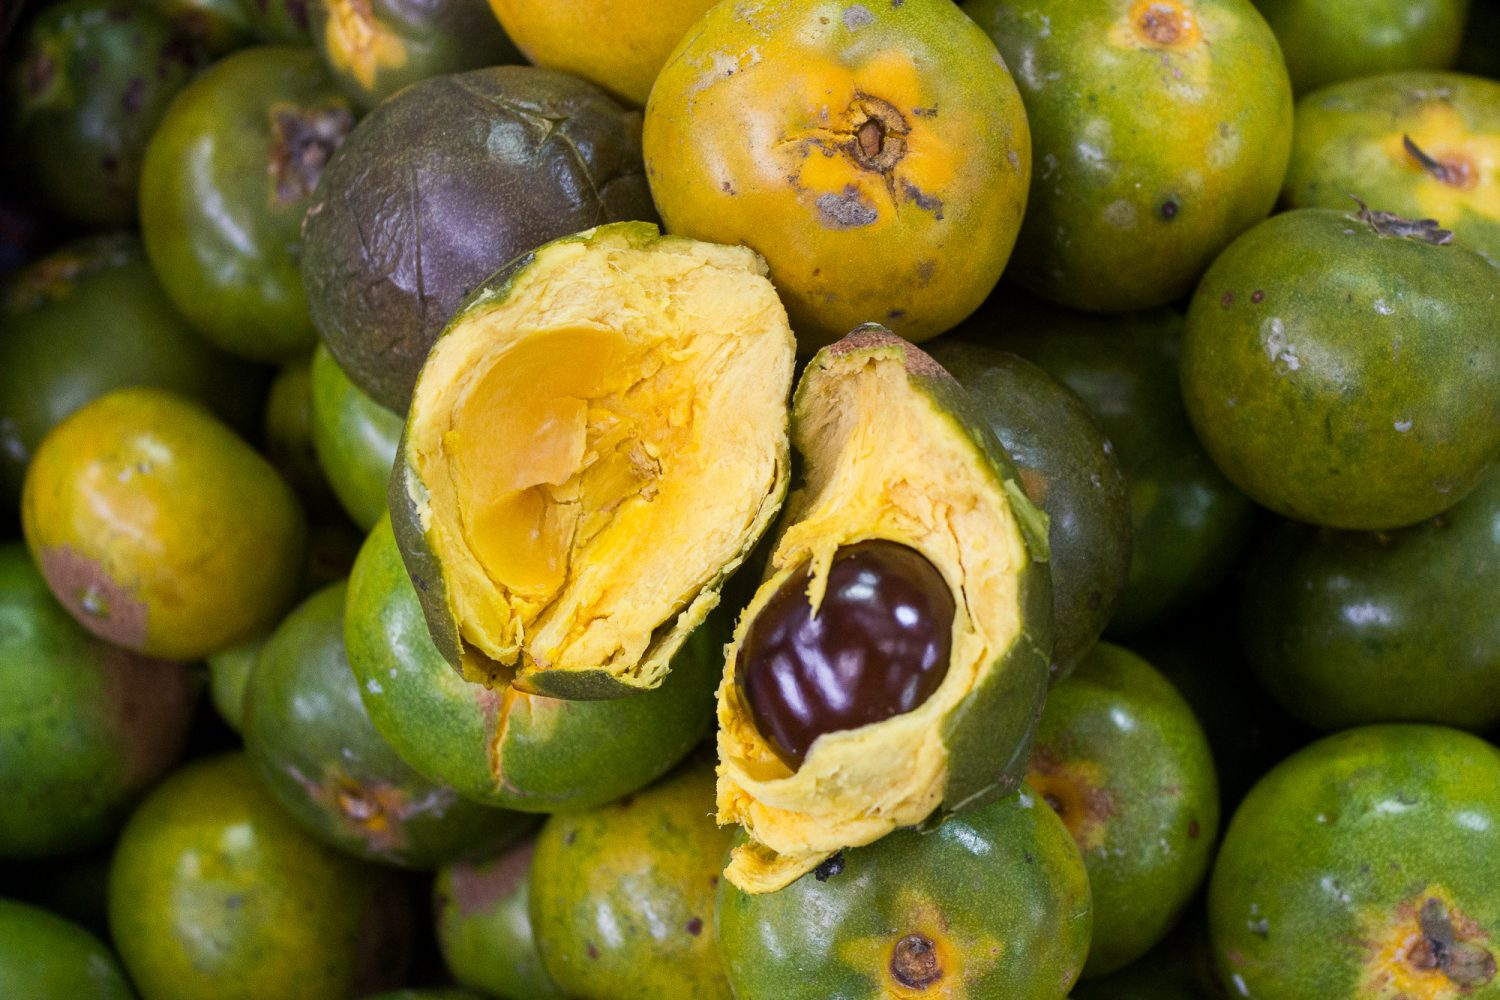 Unique Peruvian Fruit_Fruits to try in Peru Lúcuma Lucuma_Eating Fruit in Peru